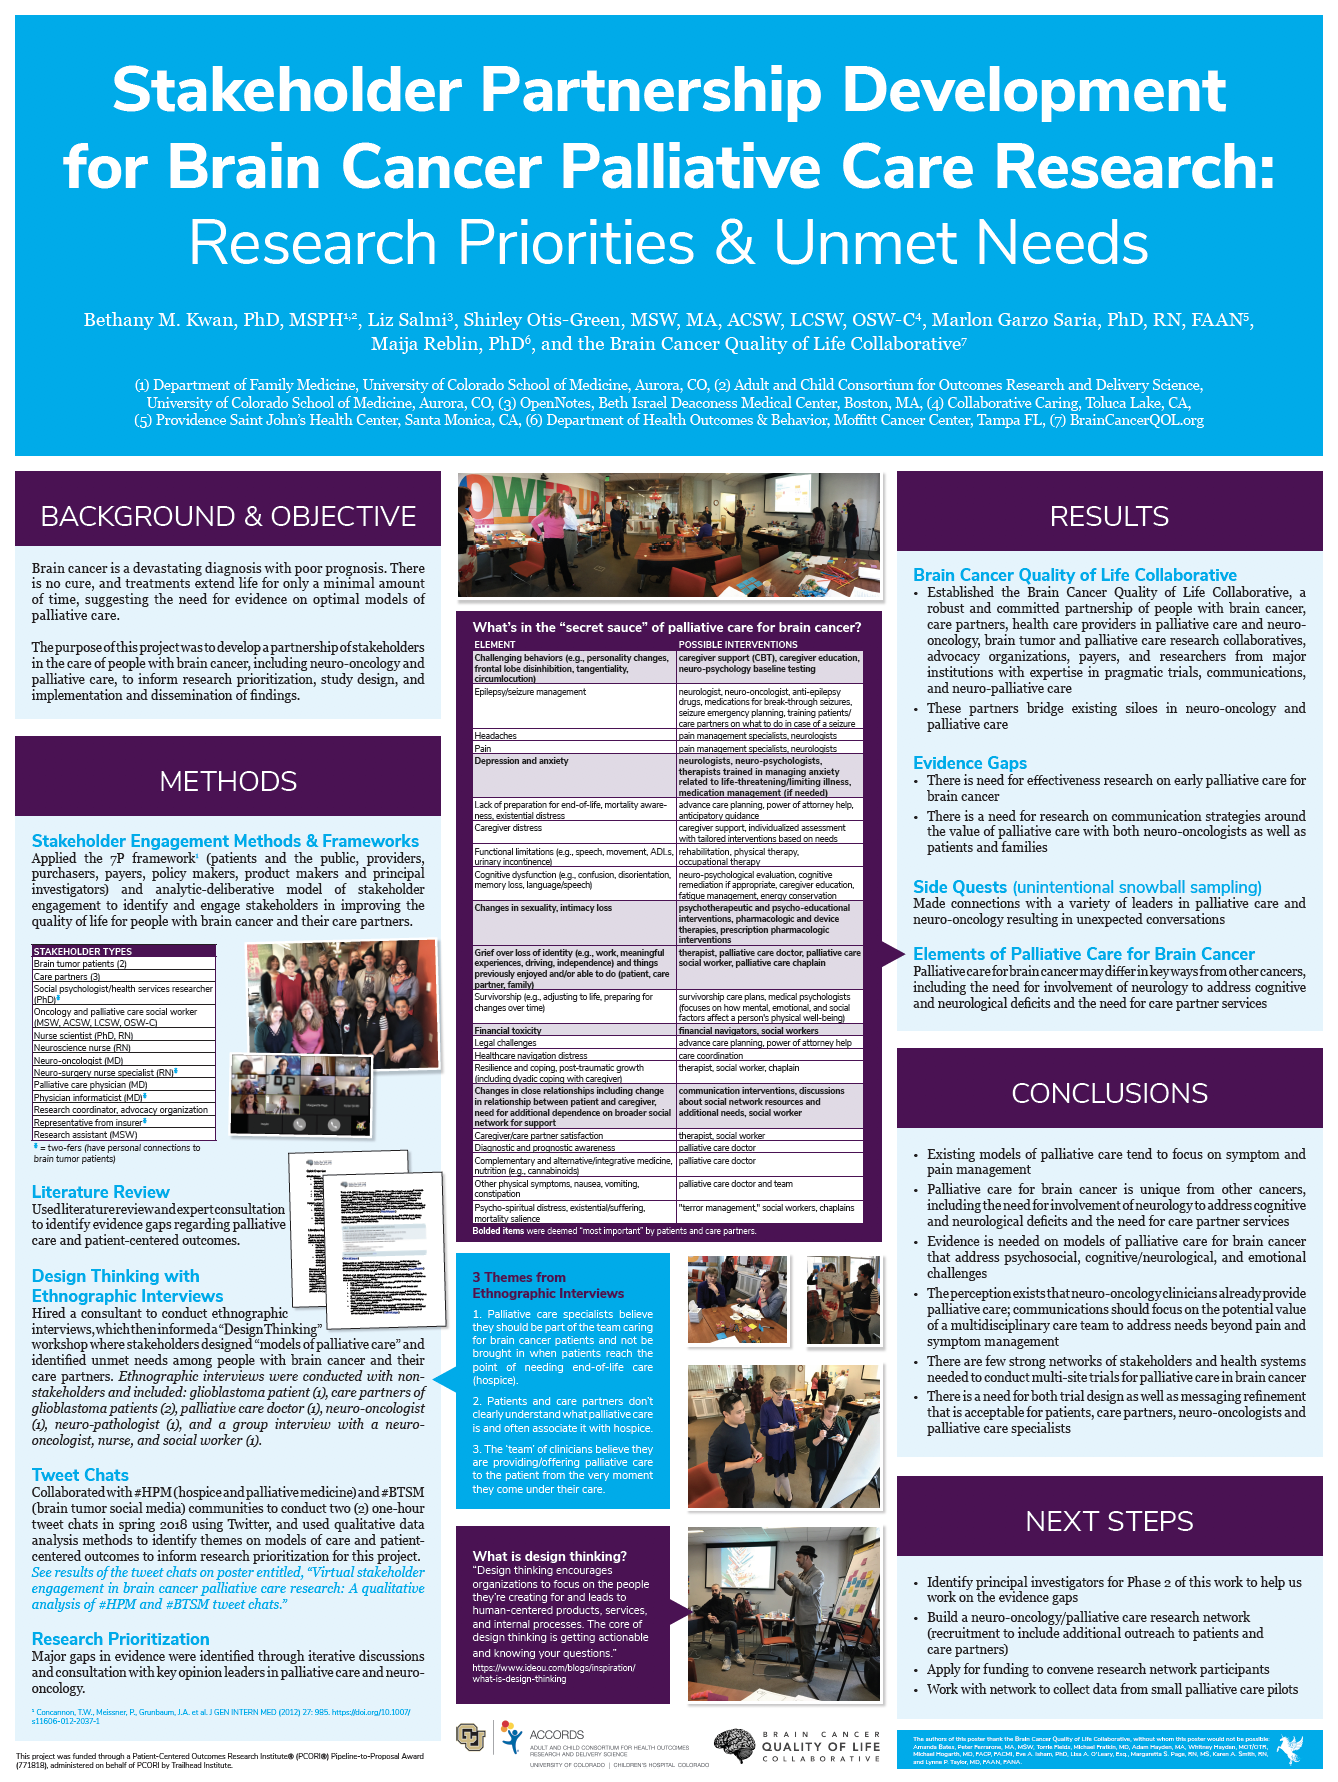 Kwan BM,  Salmi L , Berry R, Lum H. Virtual stakeholder engagement in brain cancer palliative care research: A qualitative analysis of #HPM and #BTSM tweet chats. Poster presented at: The Society of Behavioral Medicine Annual Meeting. Washington, DC. 2019 Mar 8.